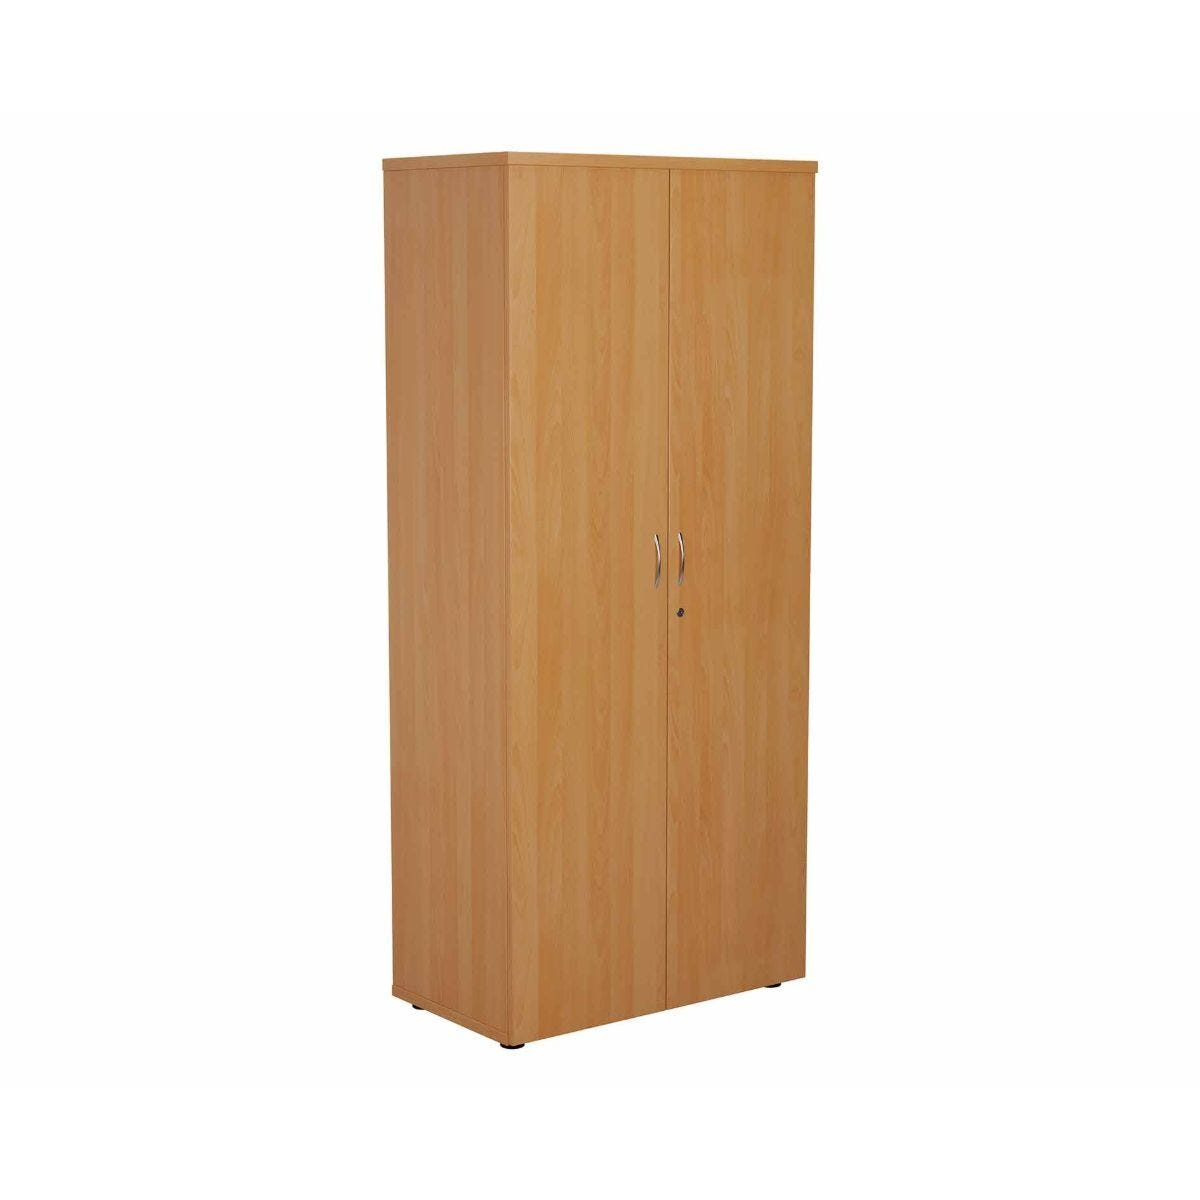 TC Office Cupboard with Lockable Doors with 4 Shelves Height 1800mm Beech